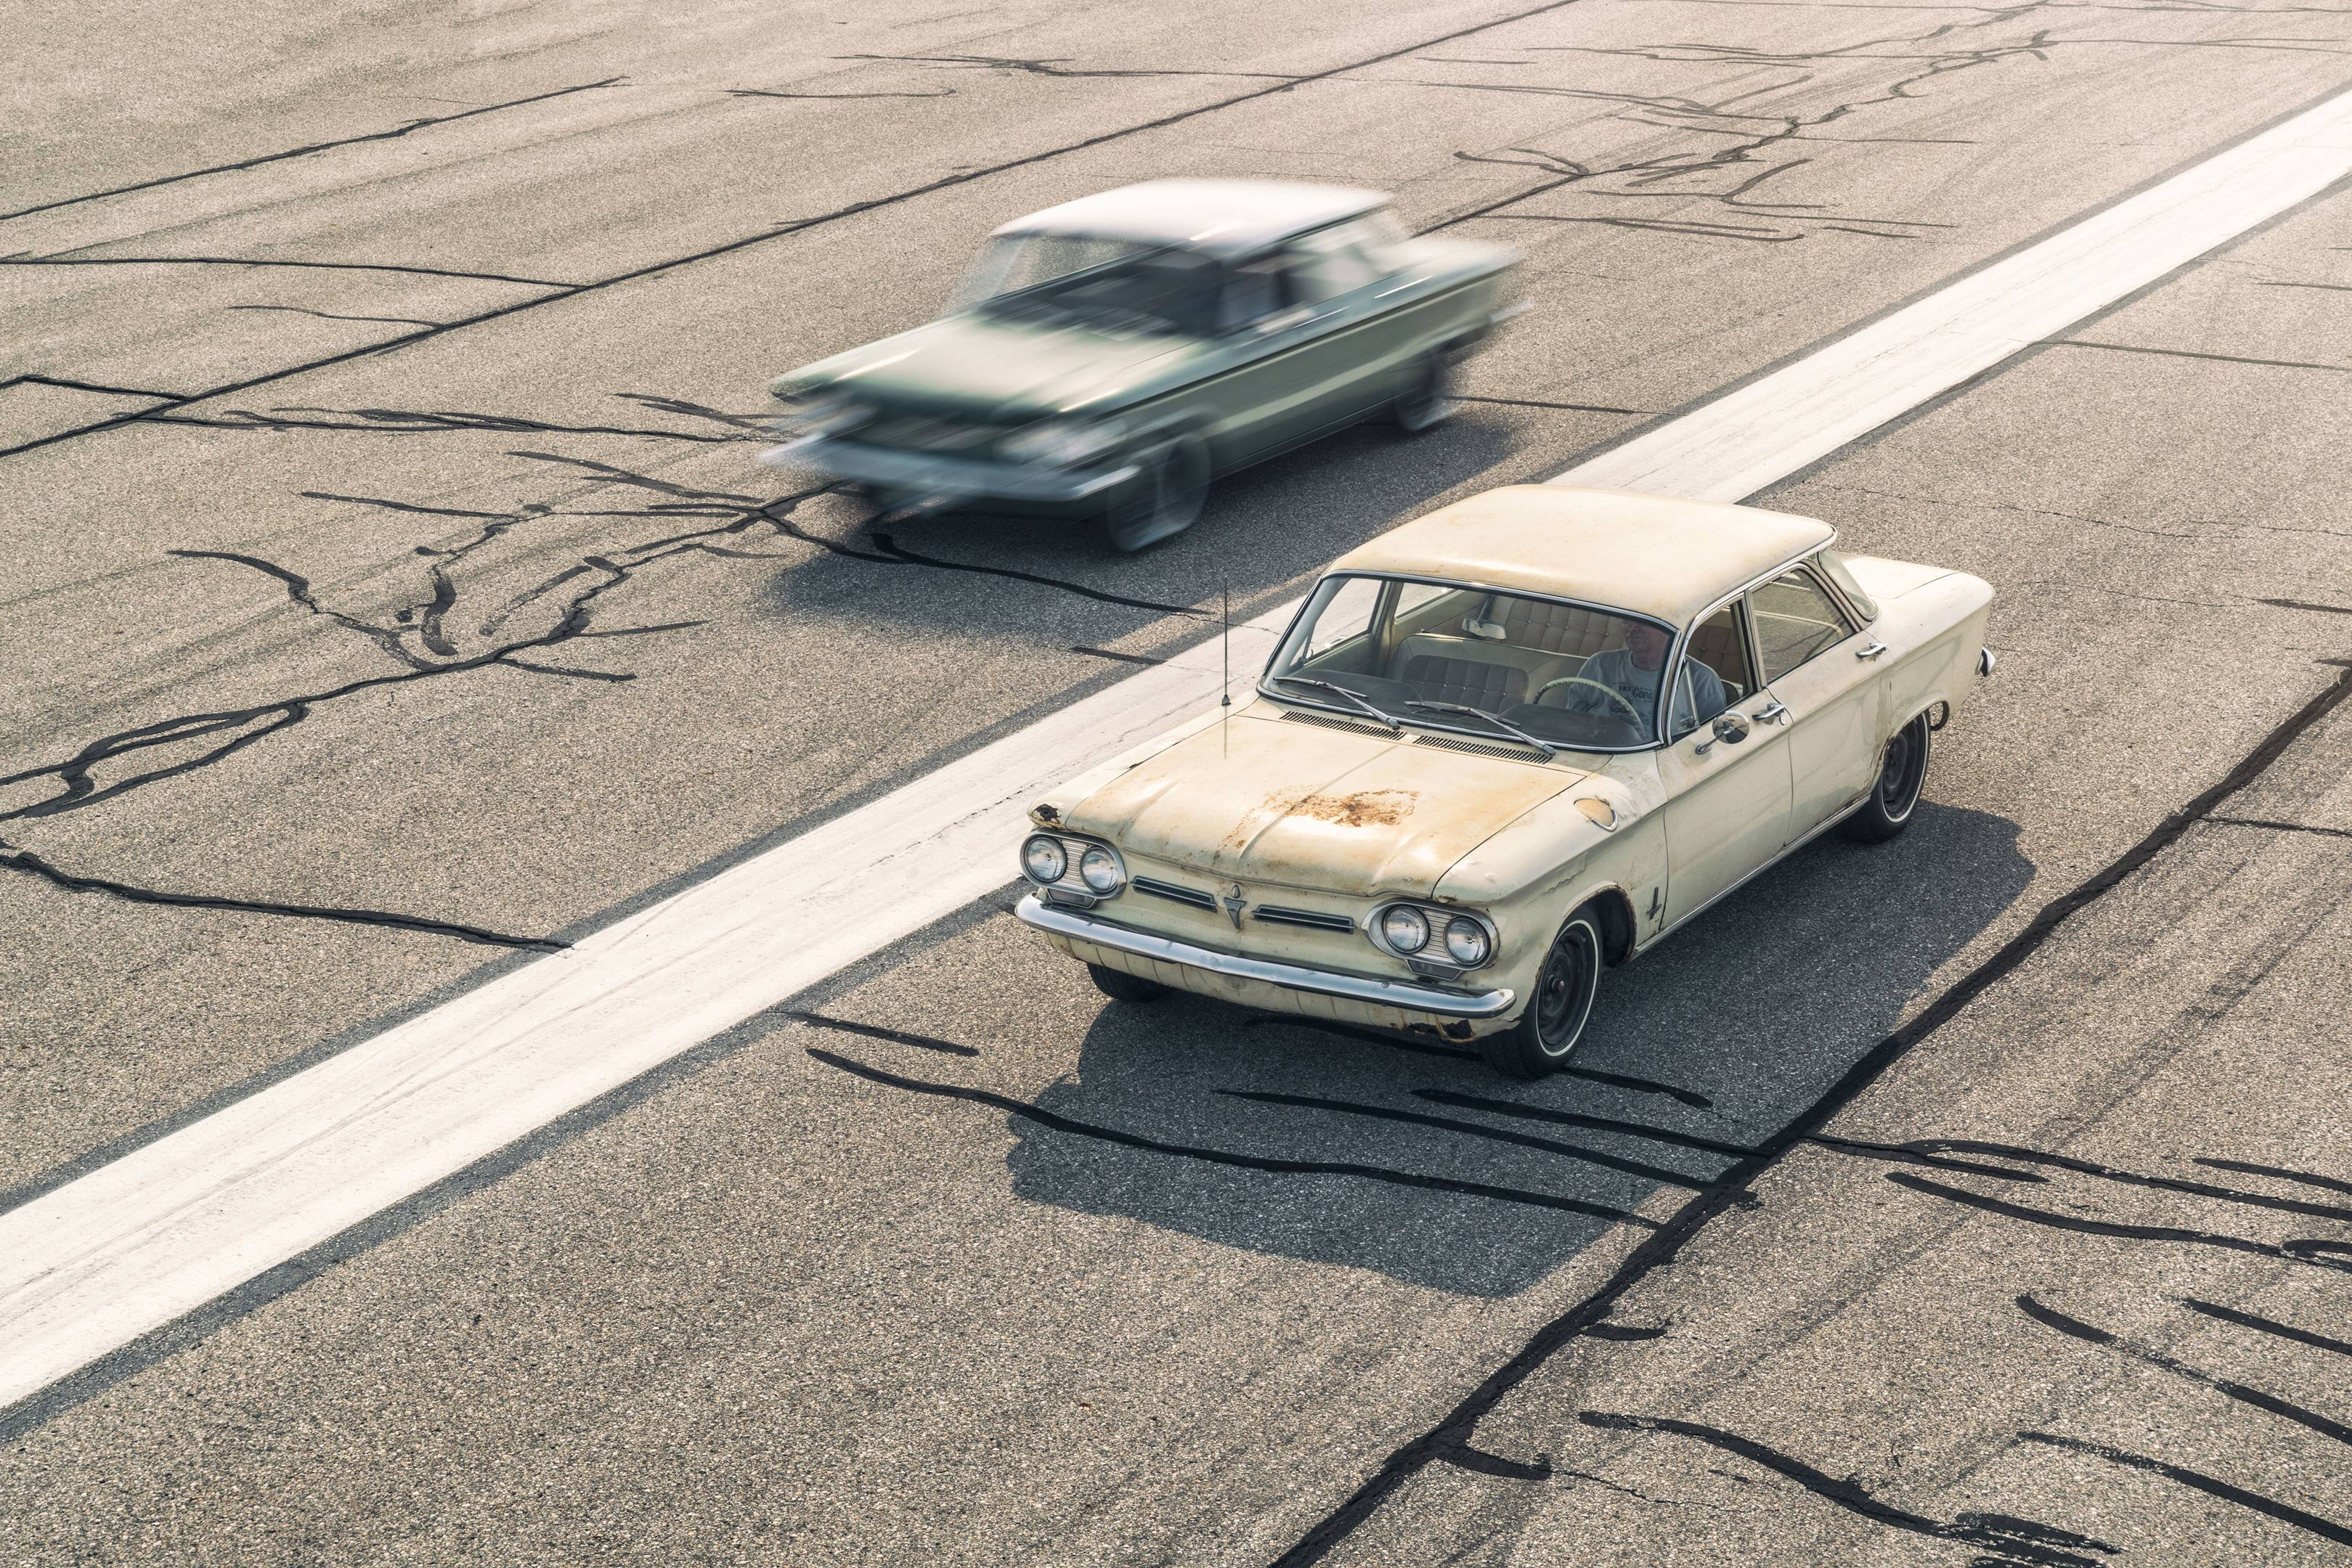 Ralph Nader's '62 Corvair monza driving next to a '60 Corvair